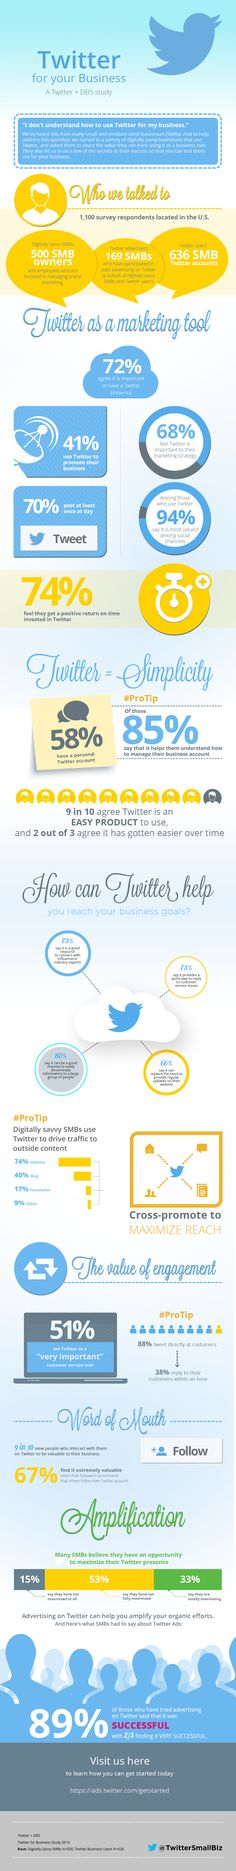 Great insights on How To Use Twitter For Your Business - #socialmedia #infographic